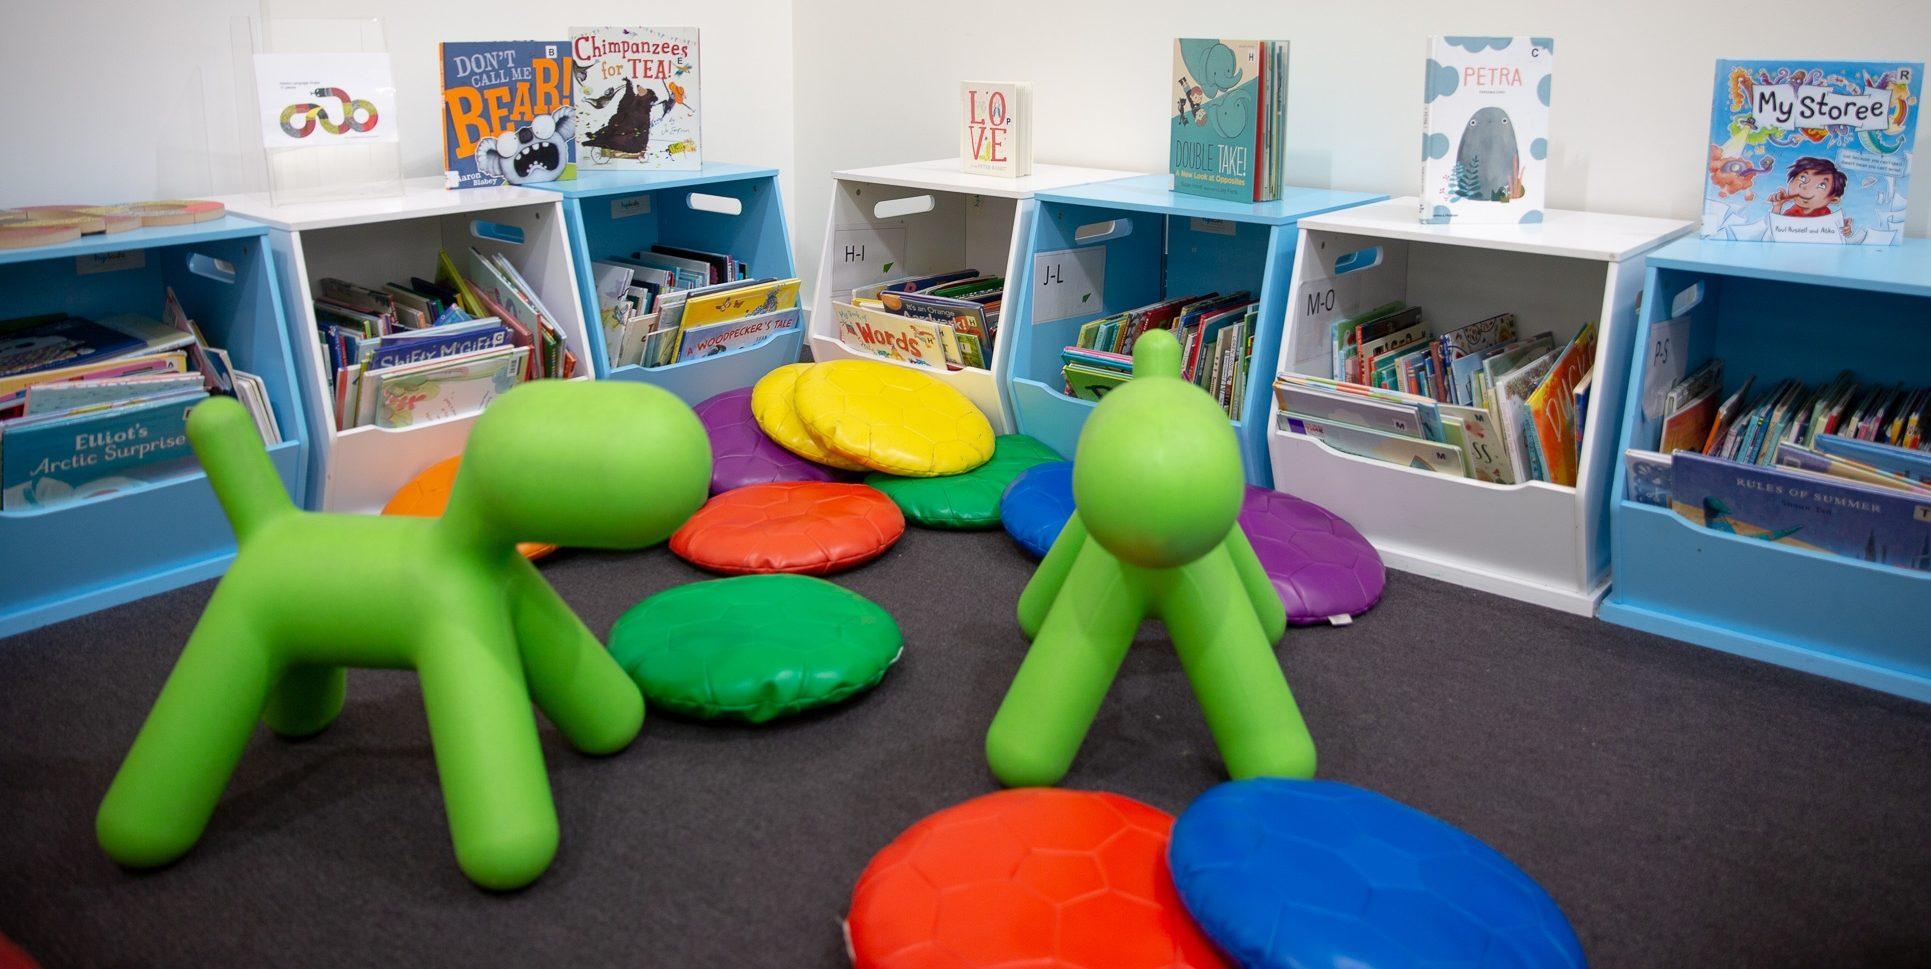 Hutt street library childrens section